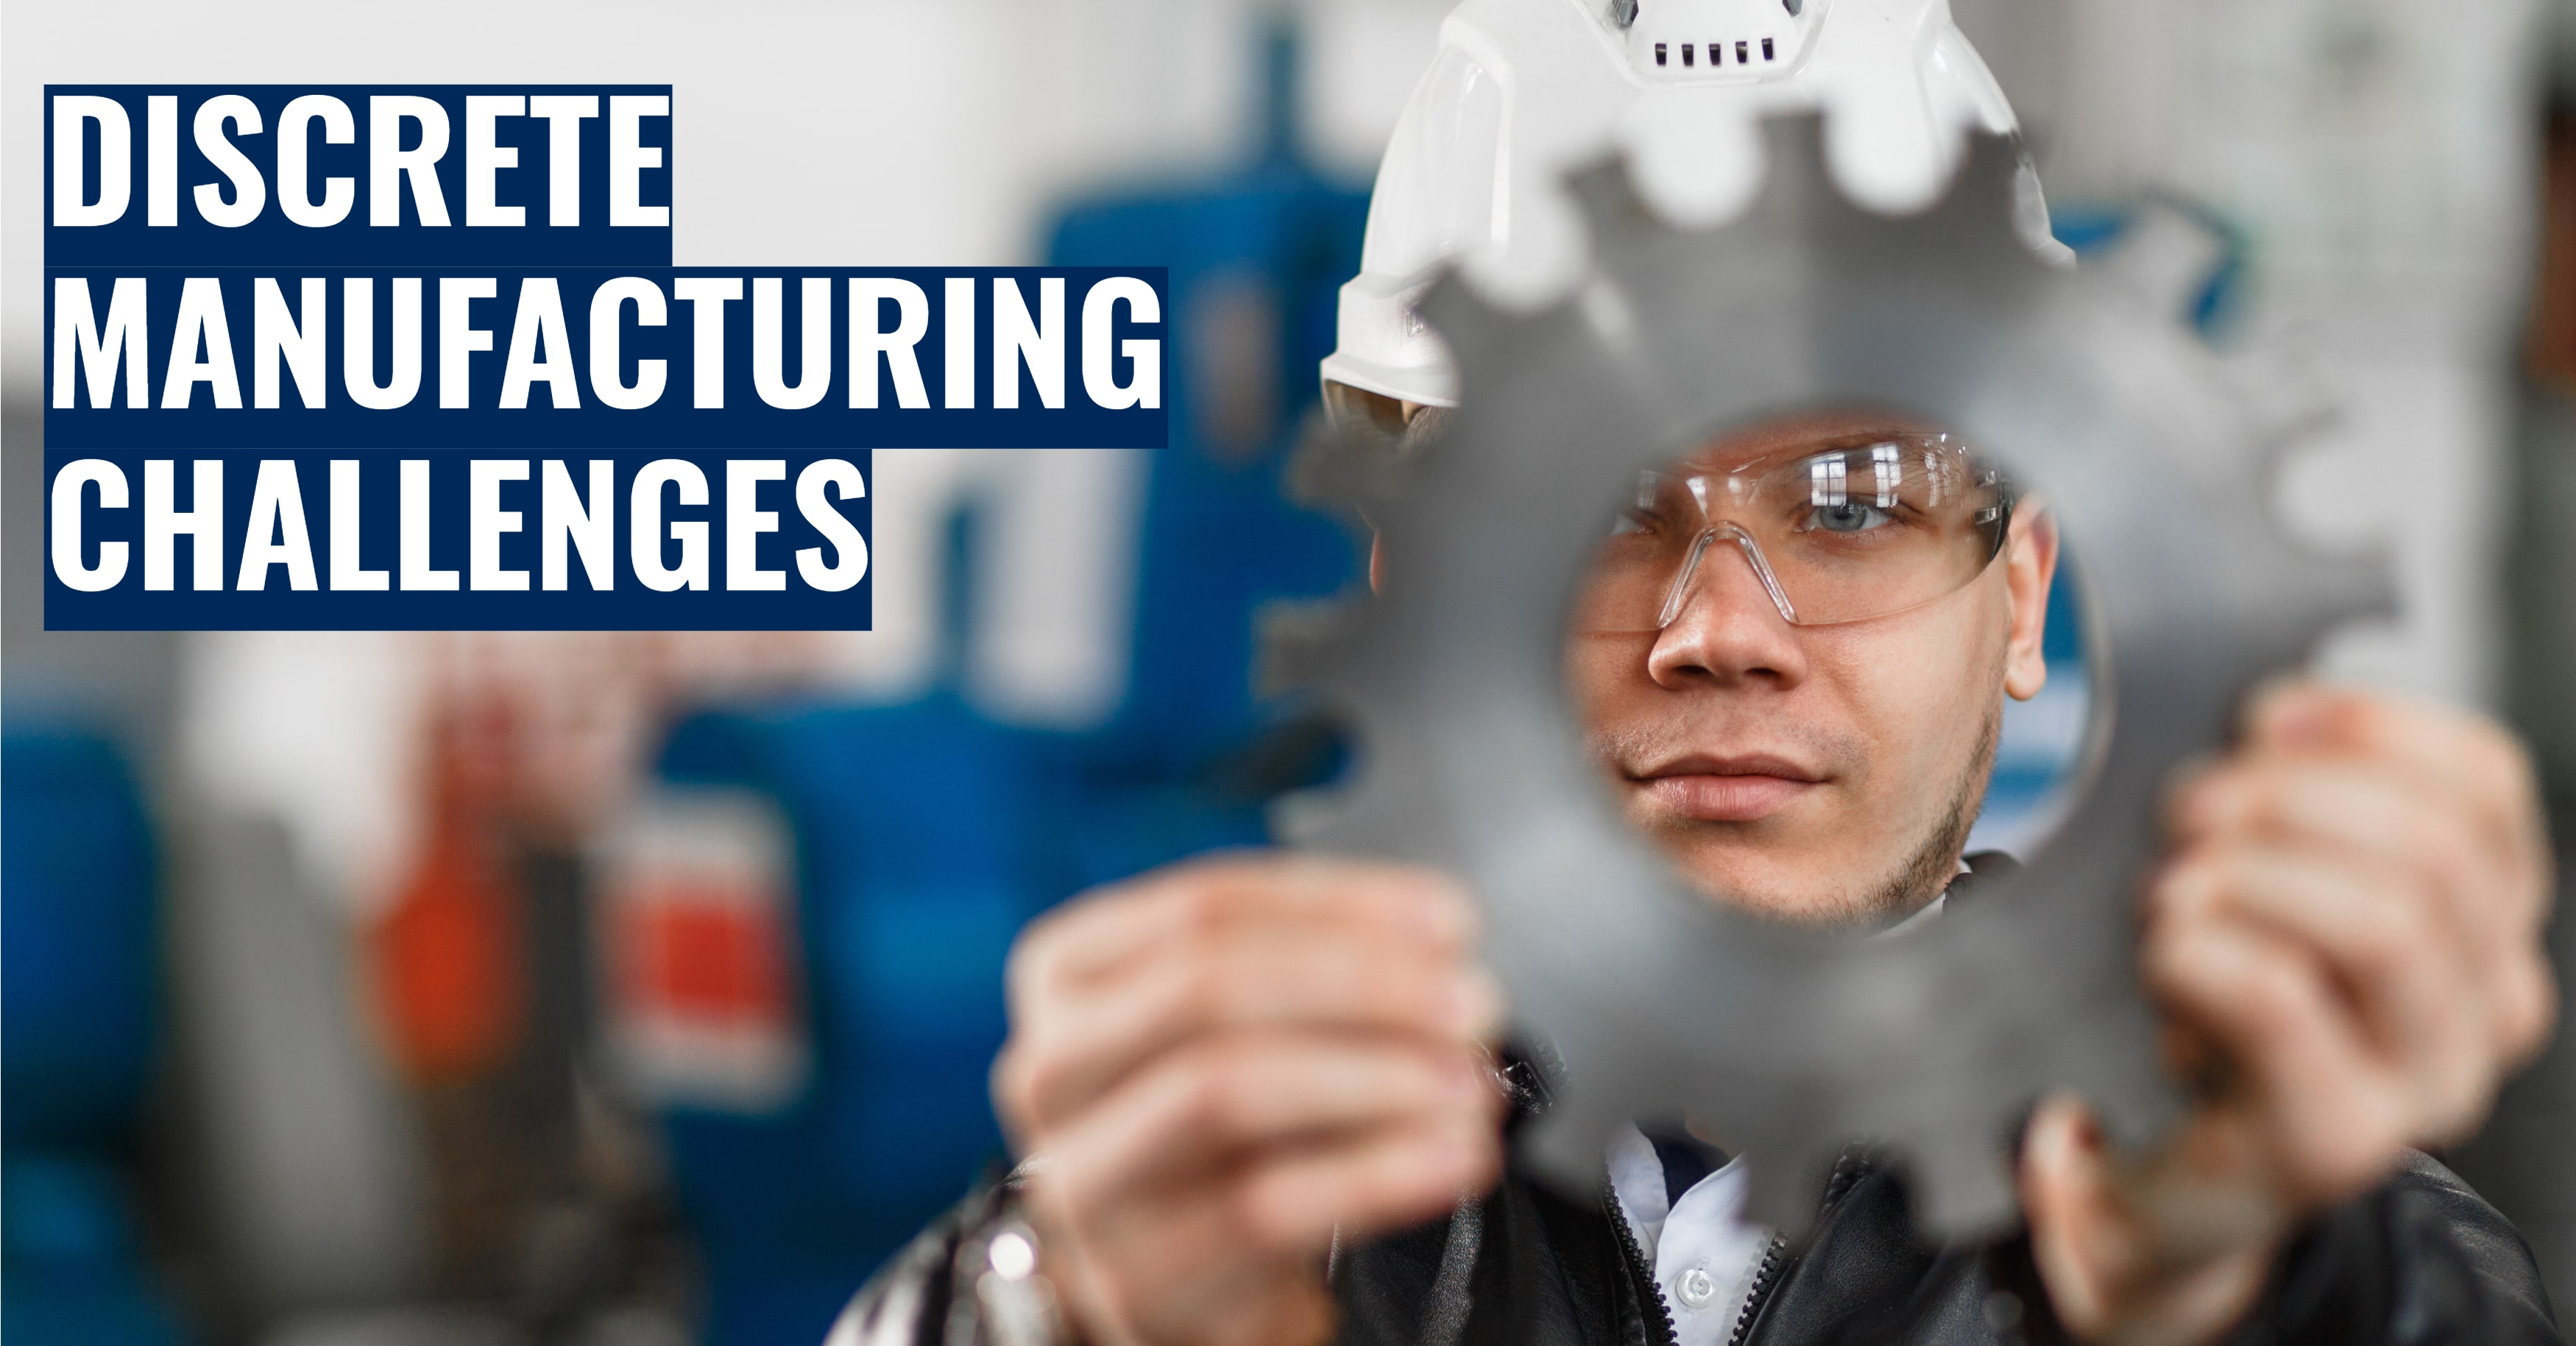 Discrete Manufacturing Challenges